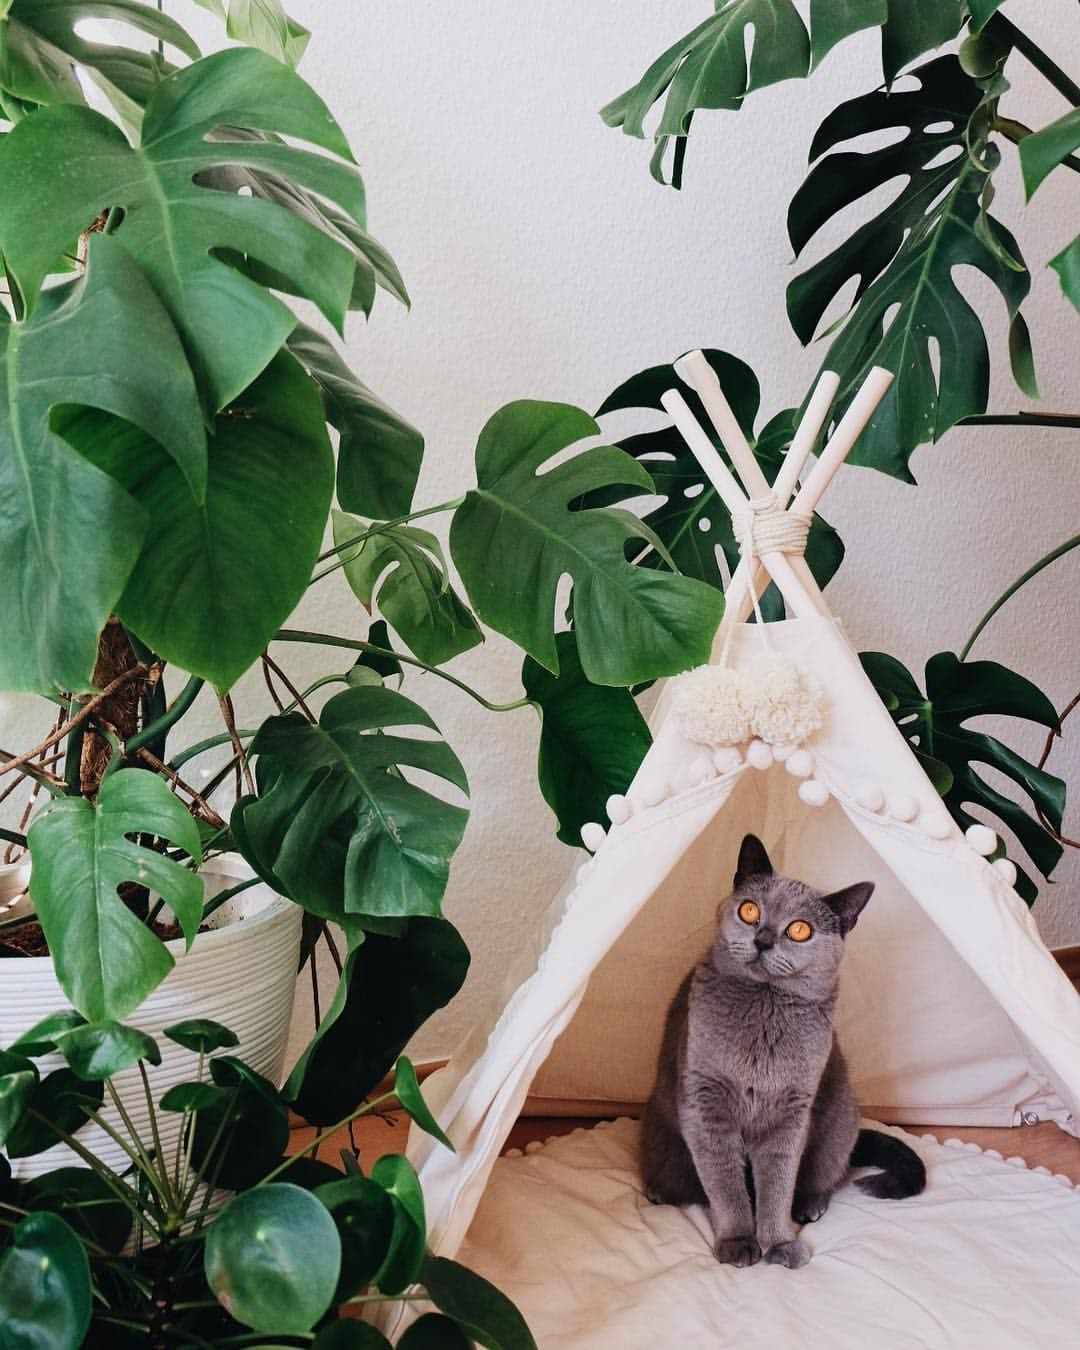 7 Effective Solutions on How to Keep Your Pets Safe From Your Plants